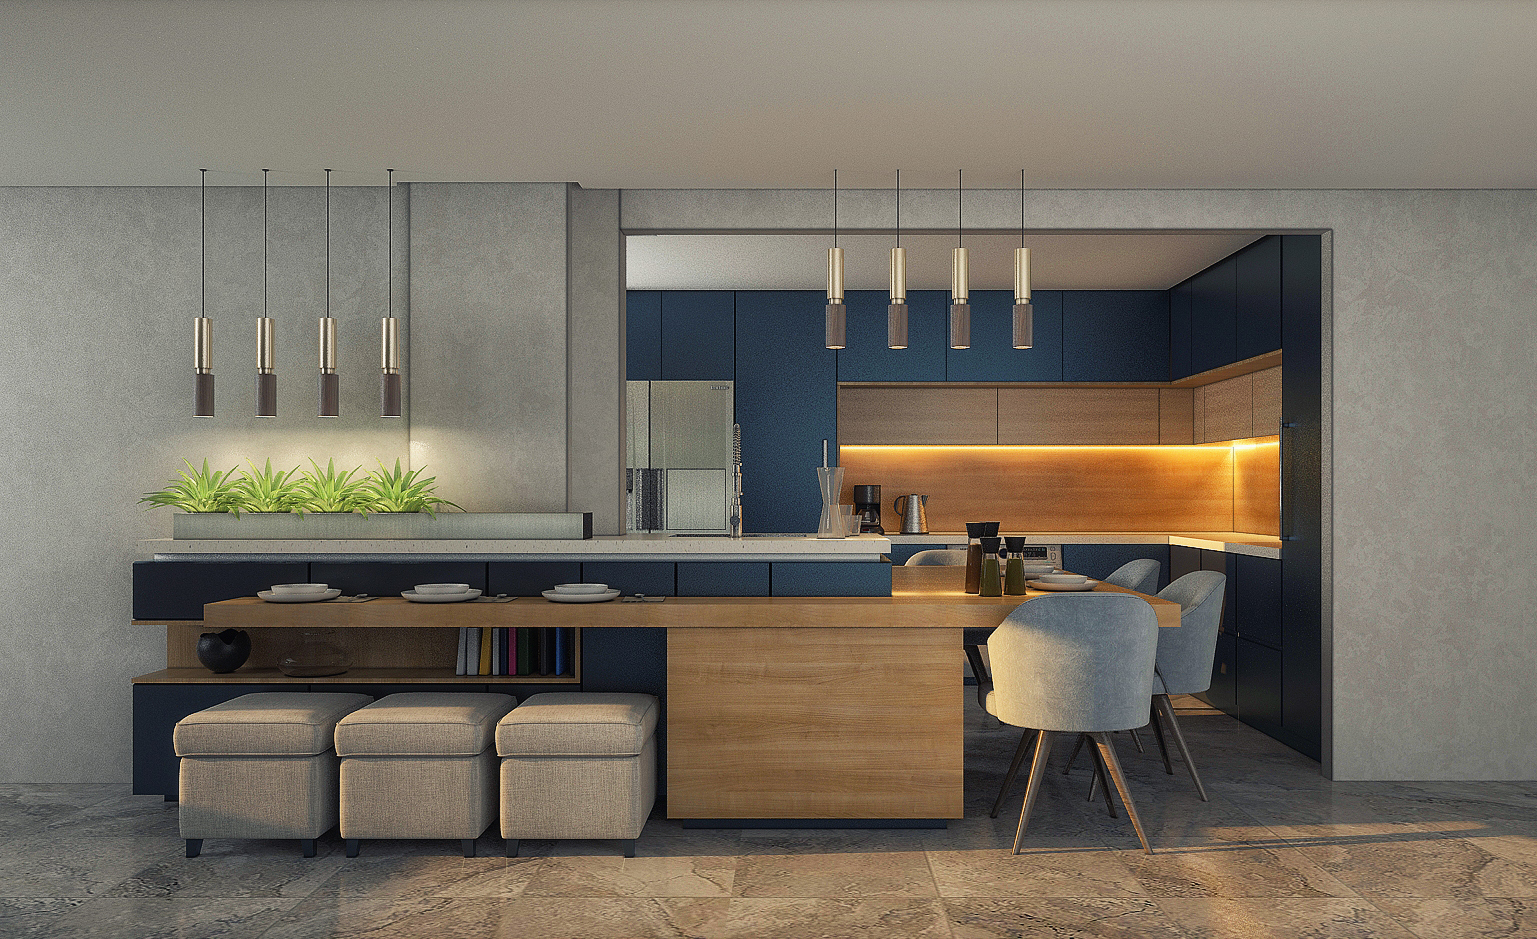 Modern Open Kitchen With Bar Interior Scenes 3d Model